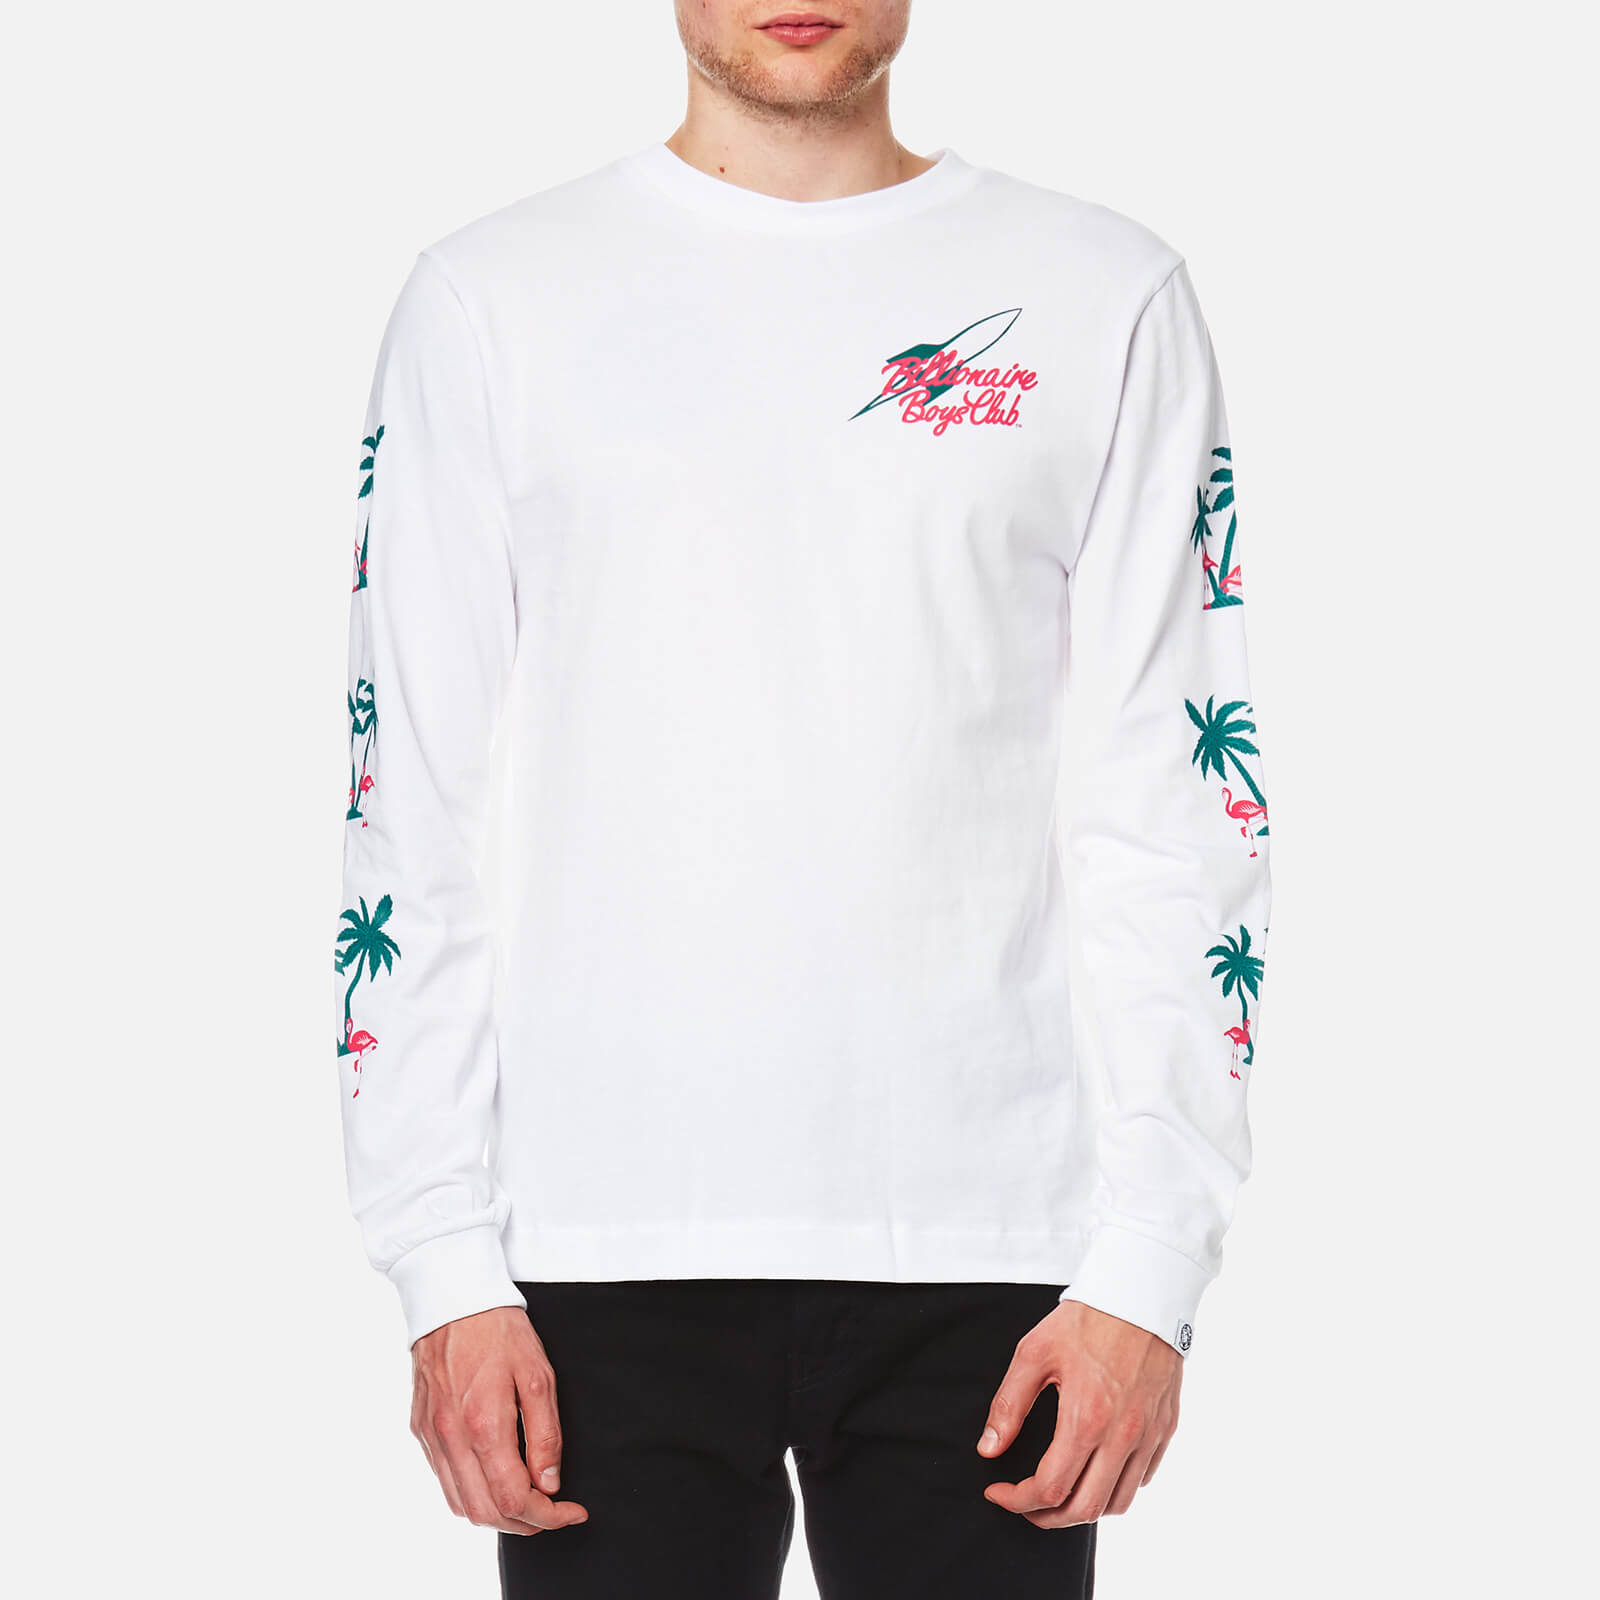 98a7a7087e6a Billionaire Boys Club Men s Paradise Print Long Sleeve T-Shirt - White -  Free UK Delivery over £50